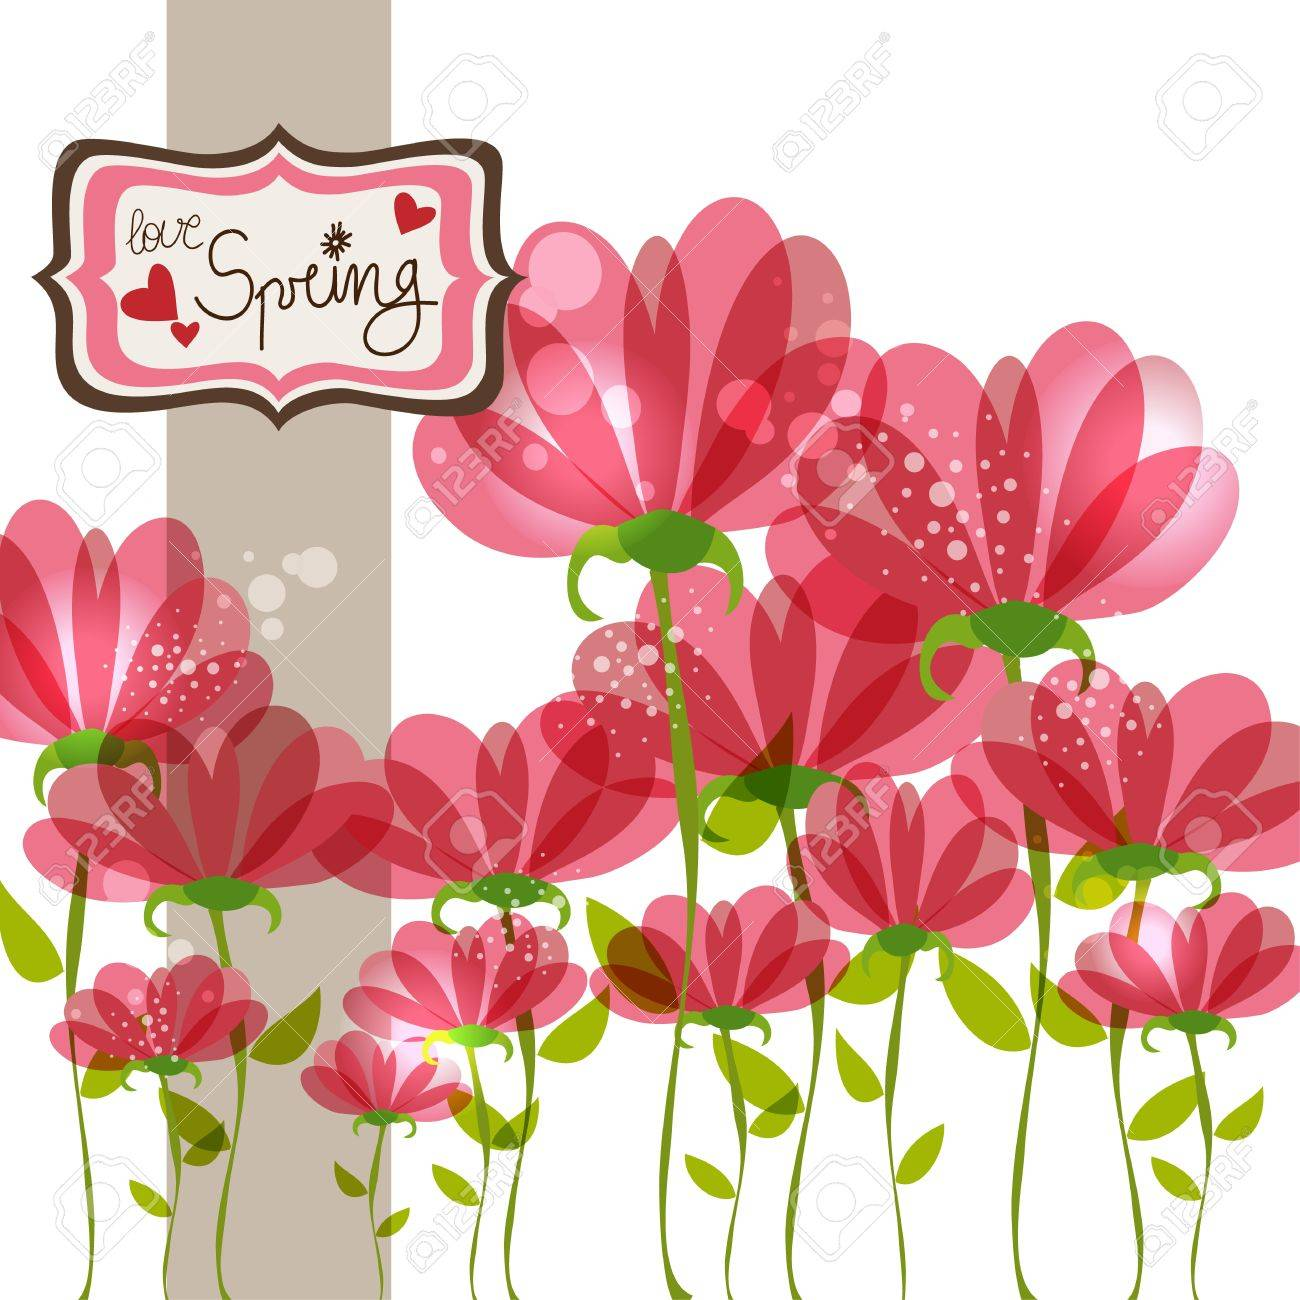 Love in Spring time contemporary transparent flowers background. EPS10 file version. This illustration contains transparencies and is layered for easy manipulation and customization. Stock Vector - 17878414